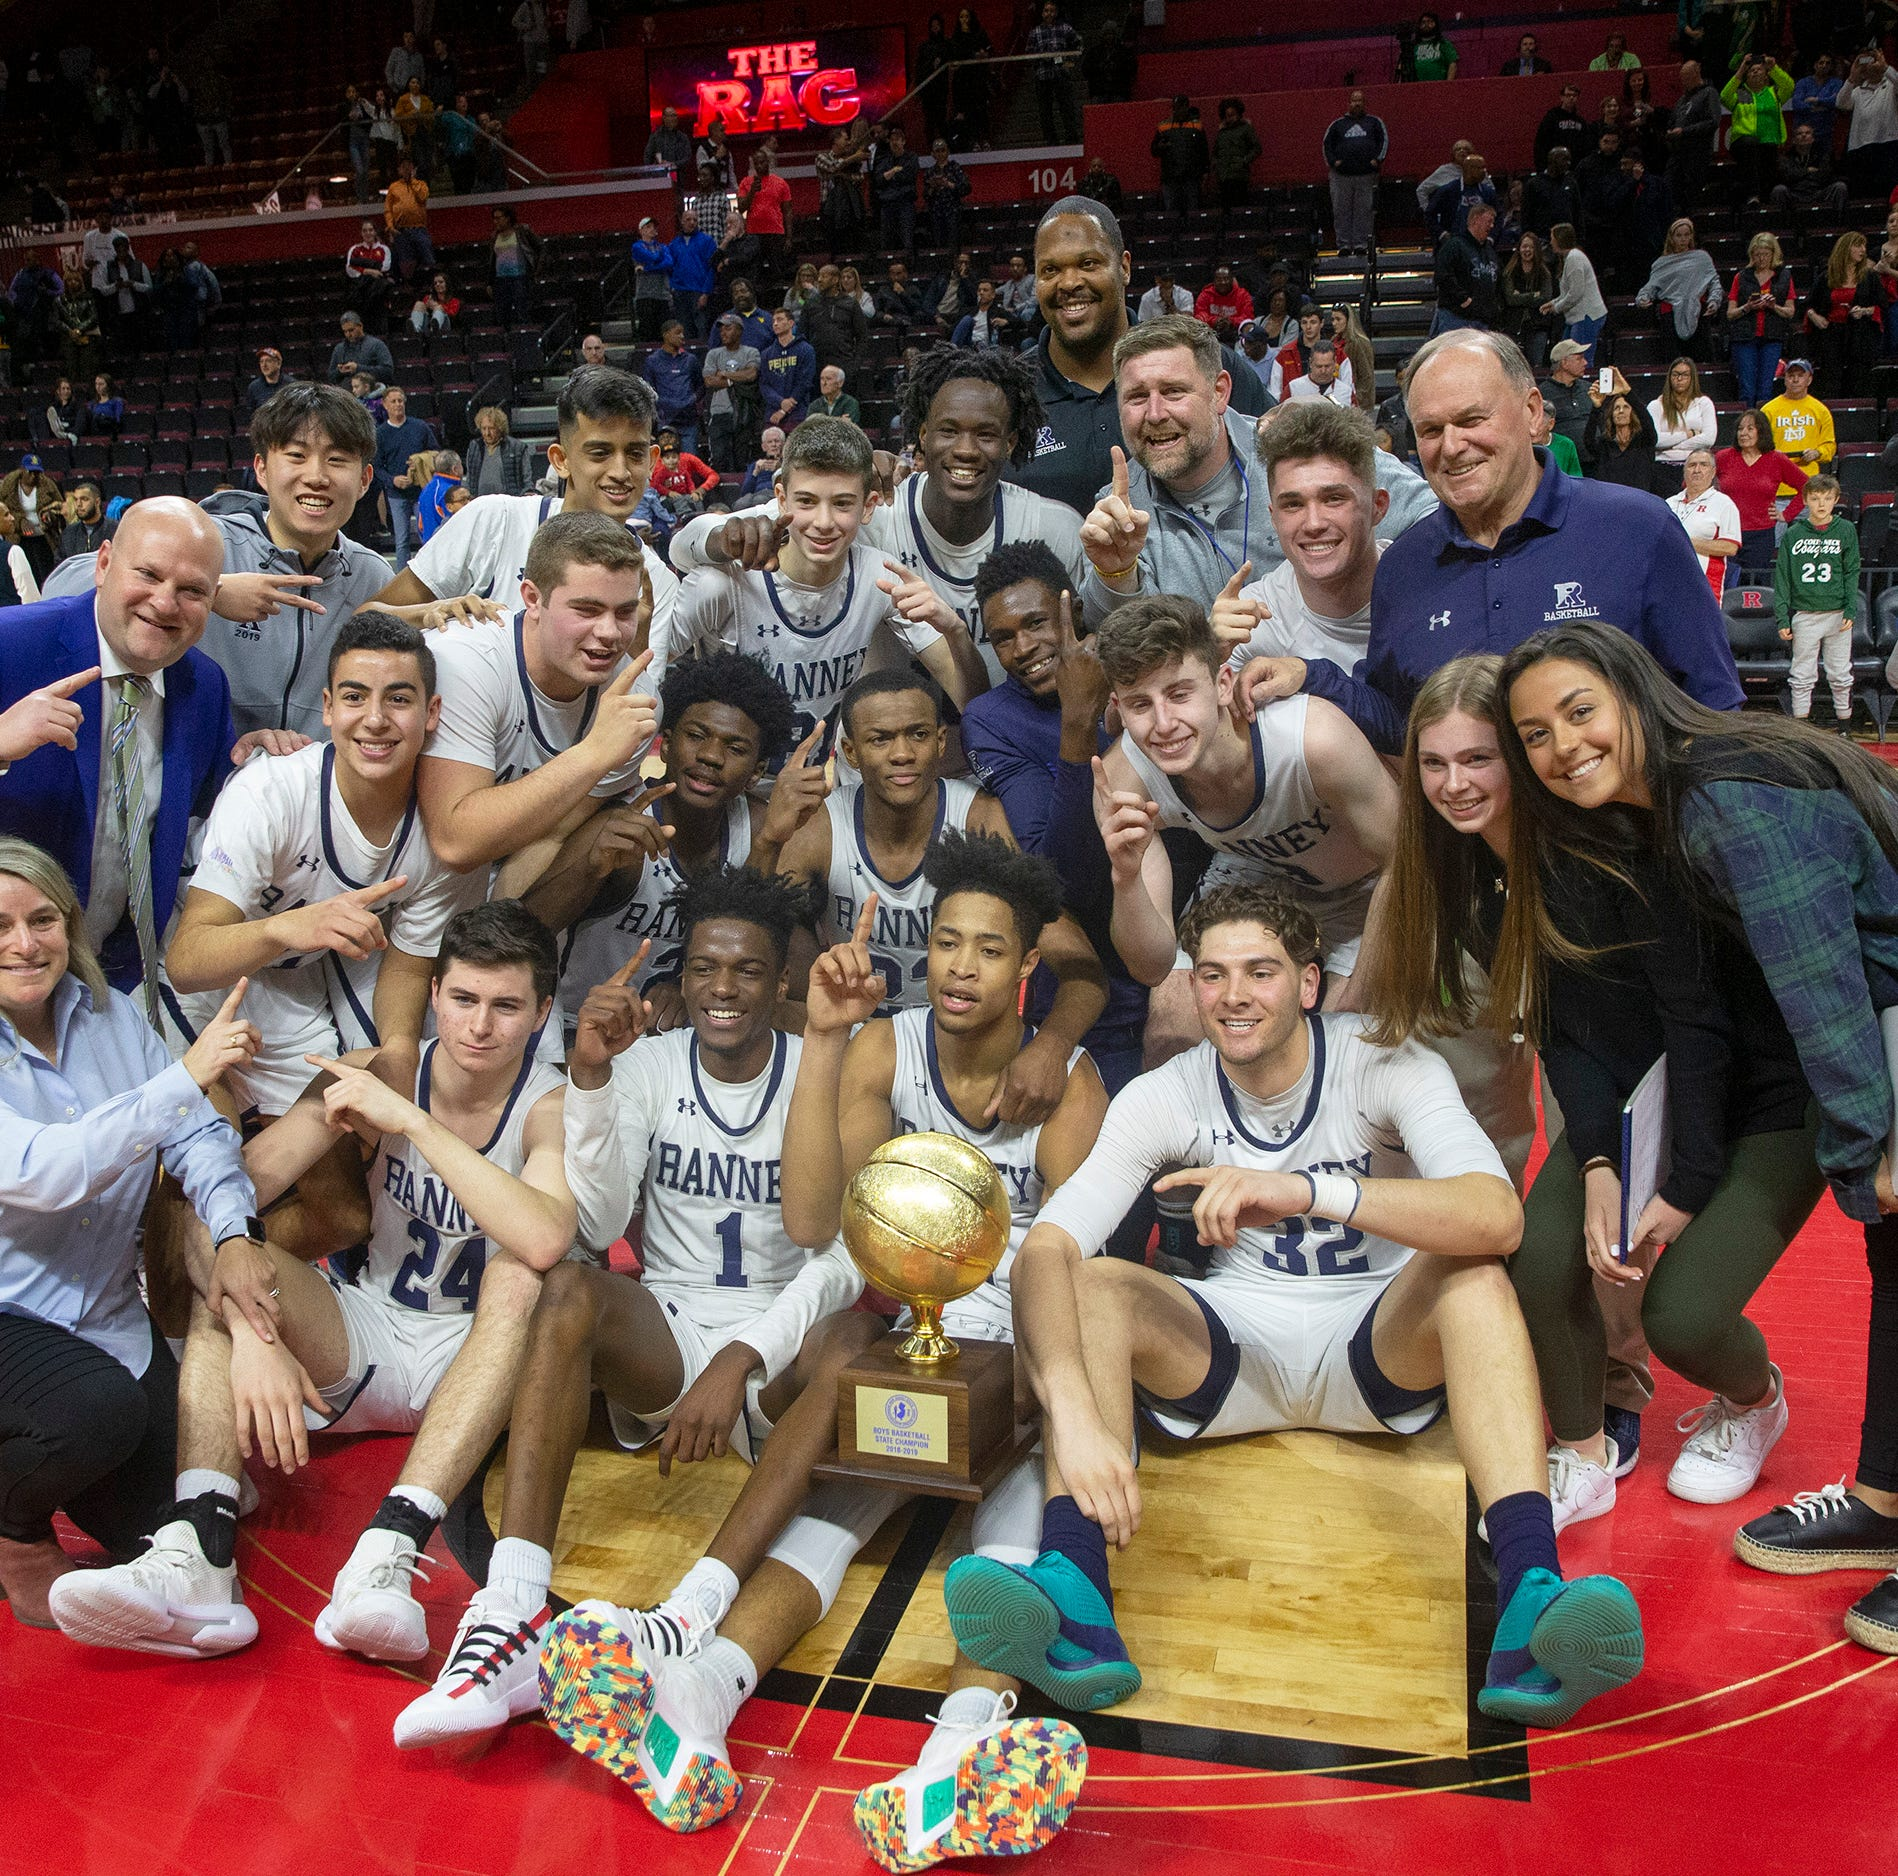 Ranney wins Tournament of Champions, outlasting Bergen Catholic